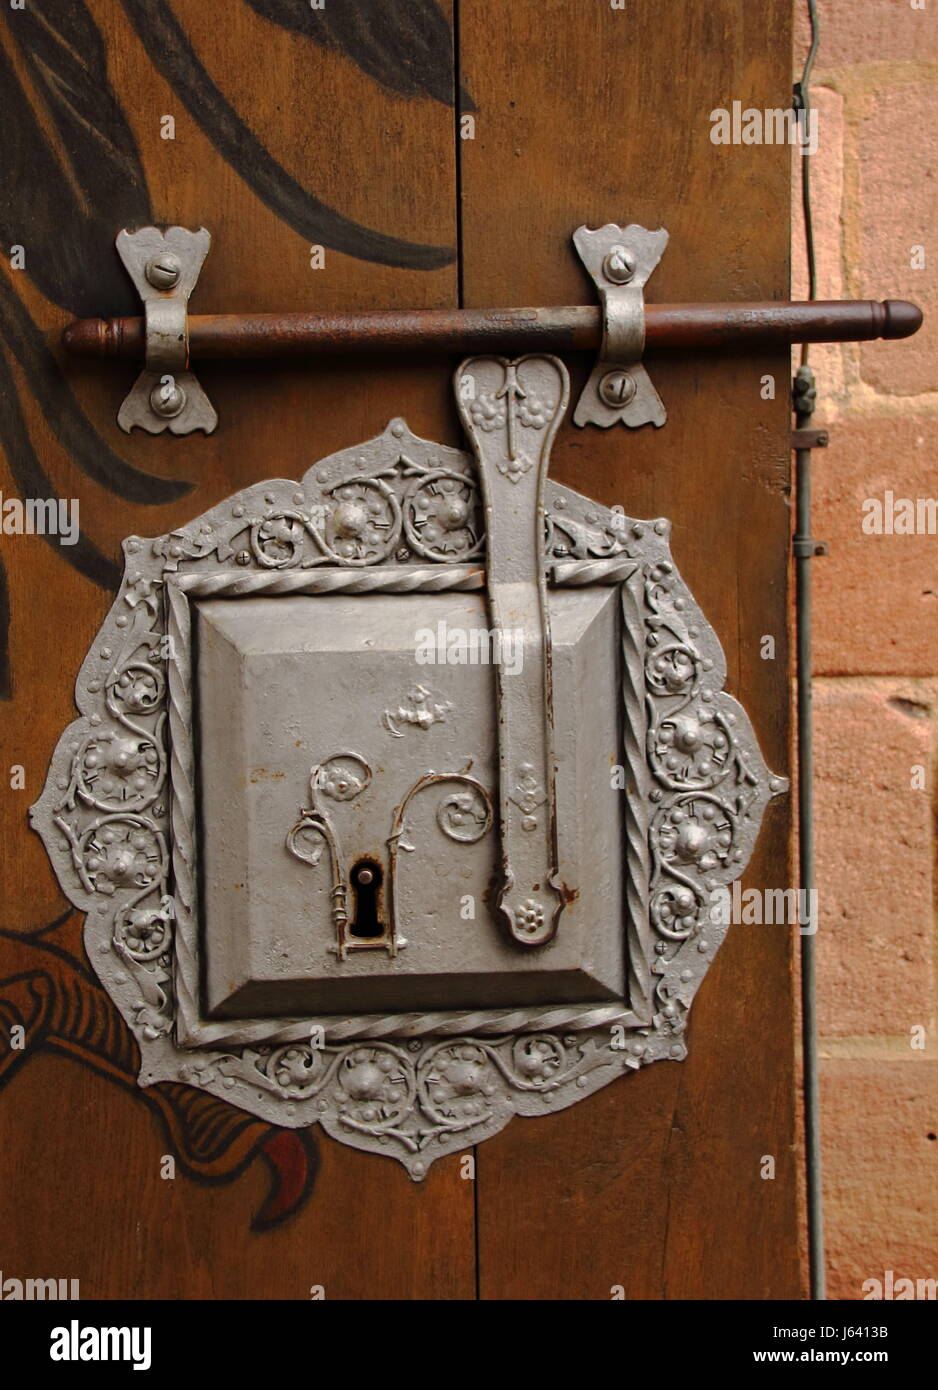 A retro lock on a large wooden door - Stock Image